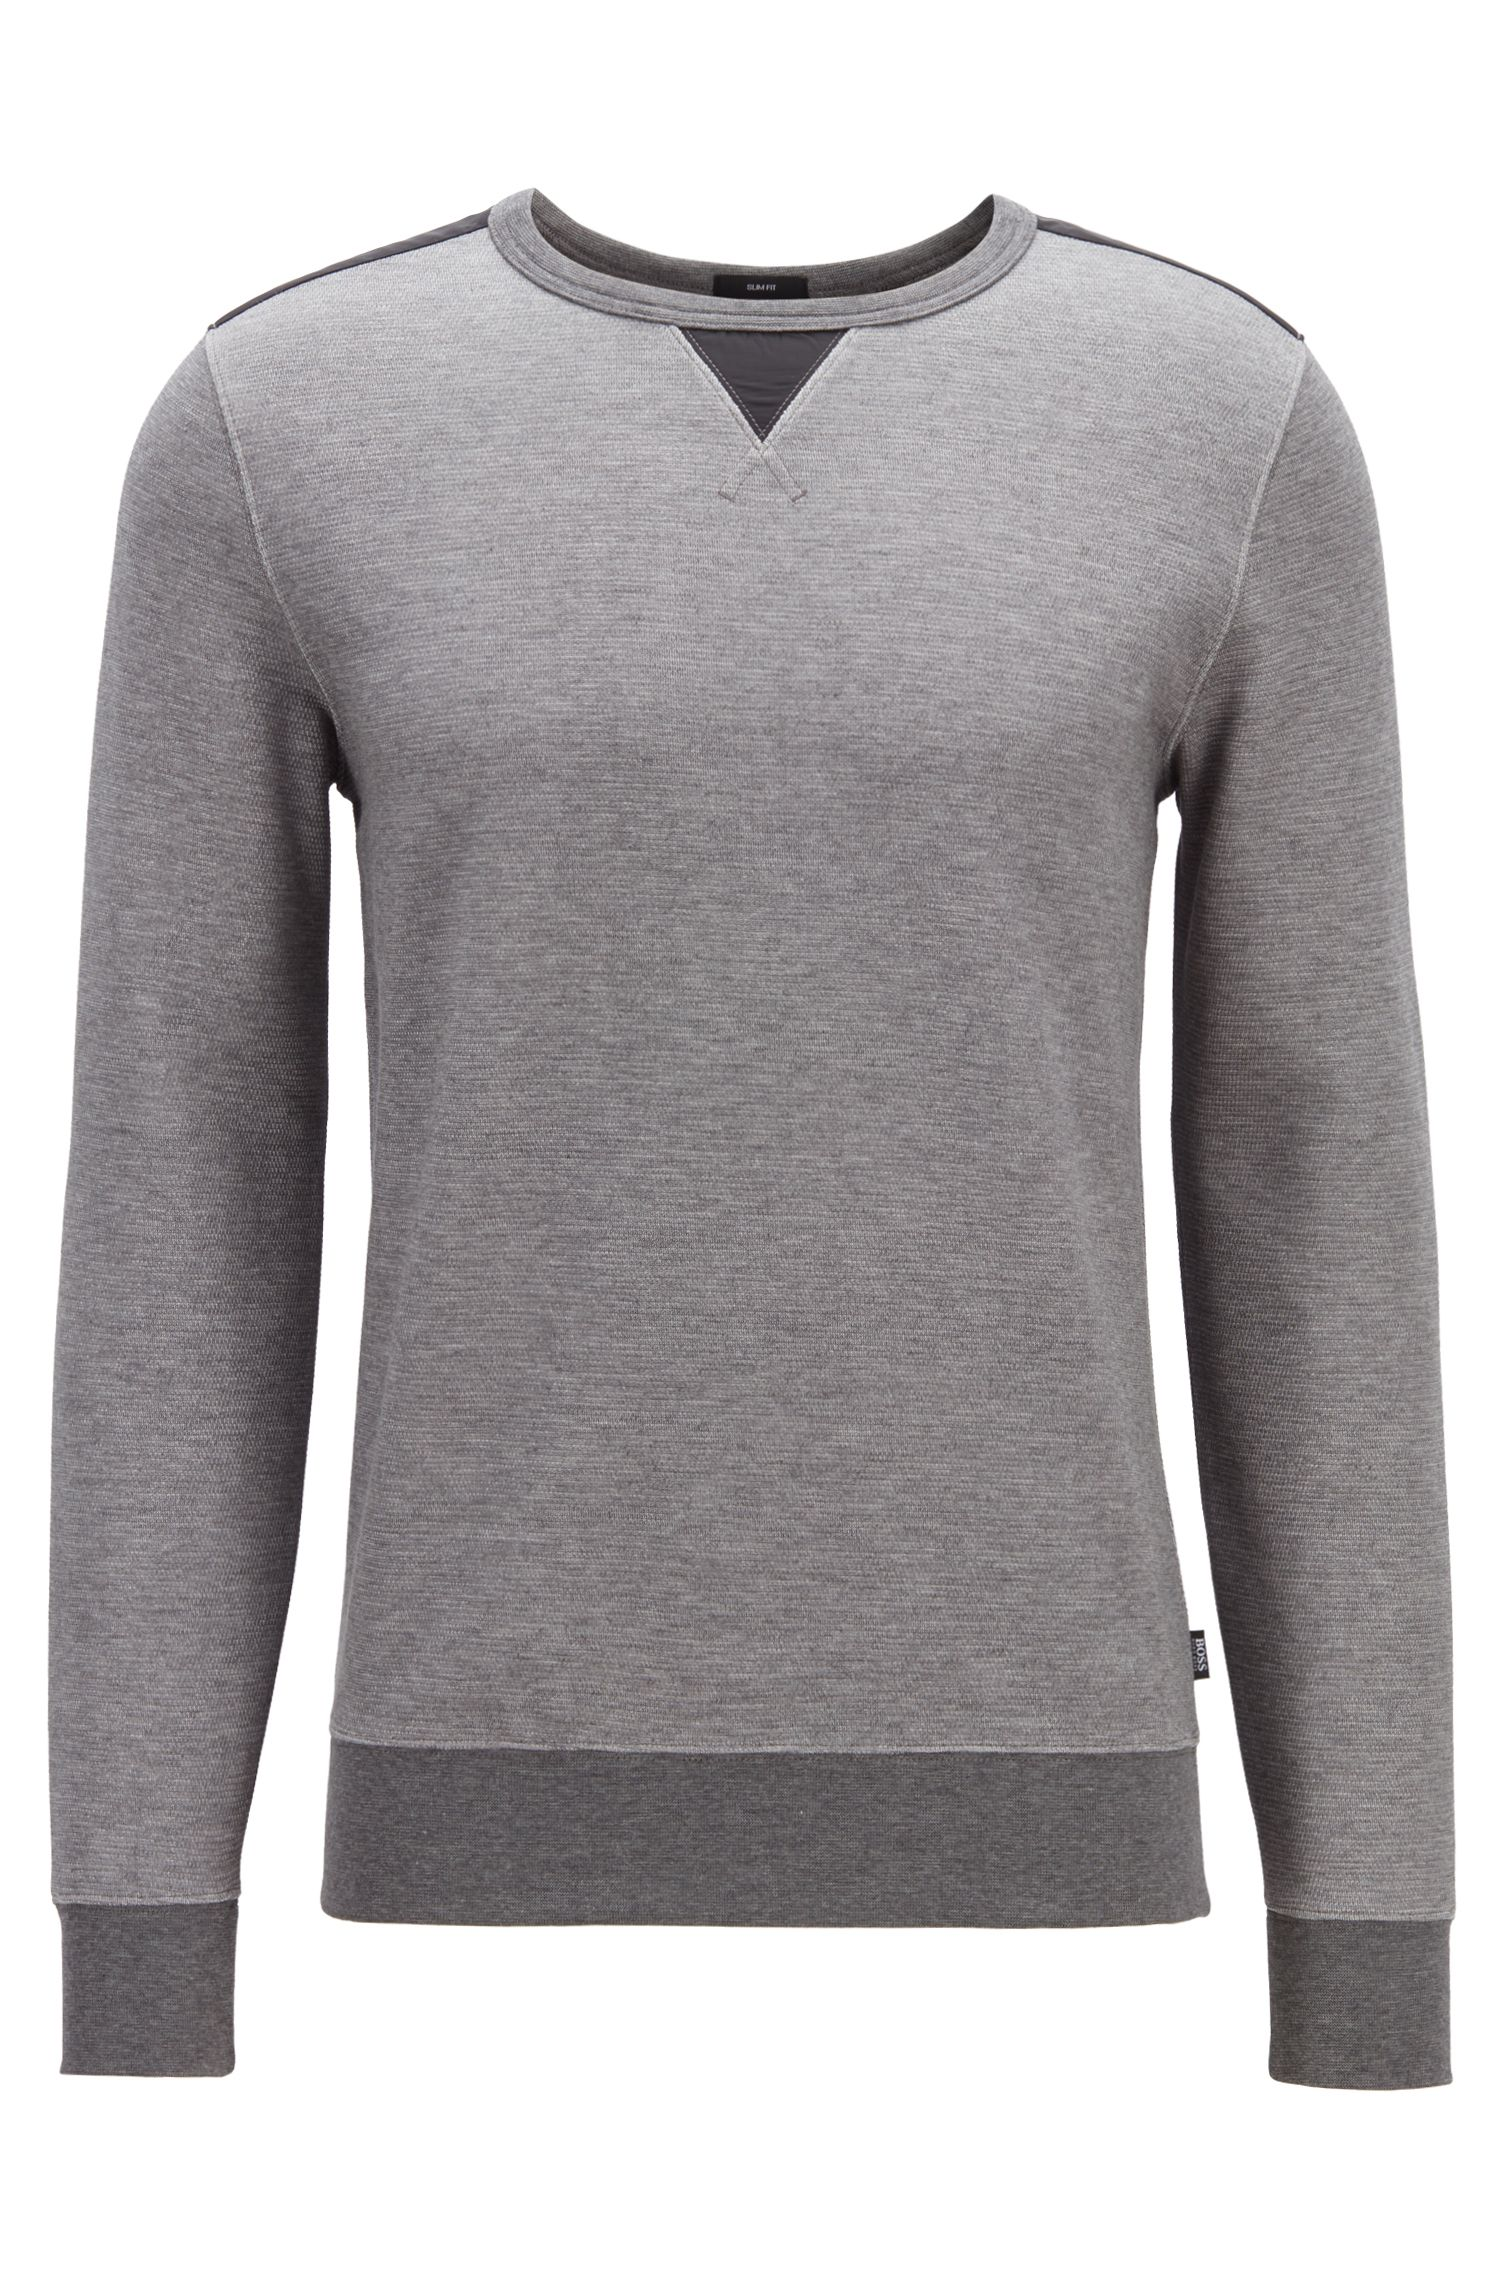 Sweat Slim Fit en coton mélangé structuré, avec empiècements contrastants, Gris